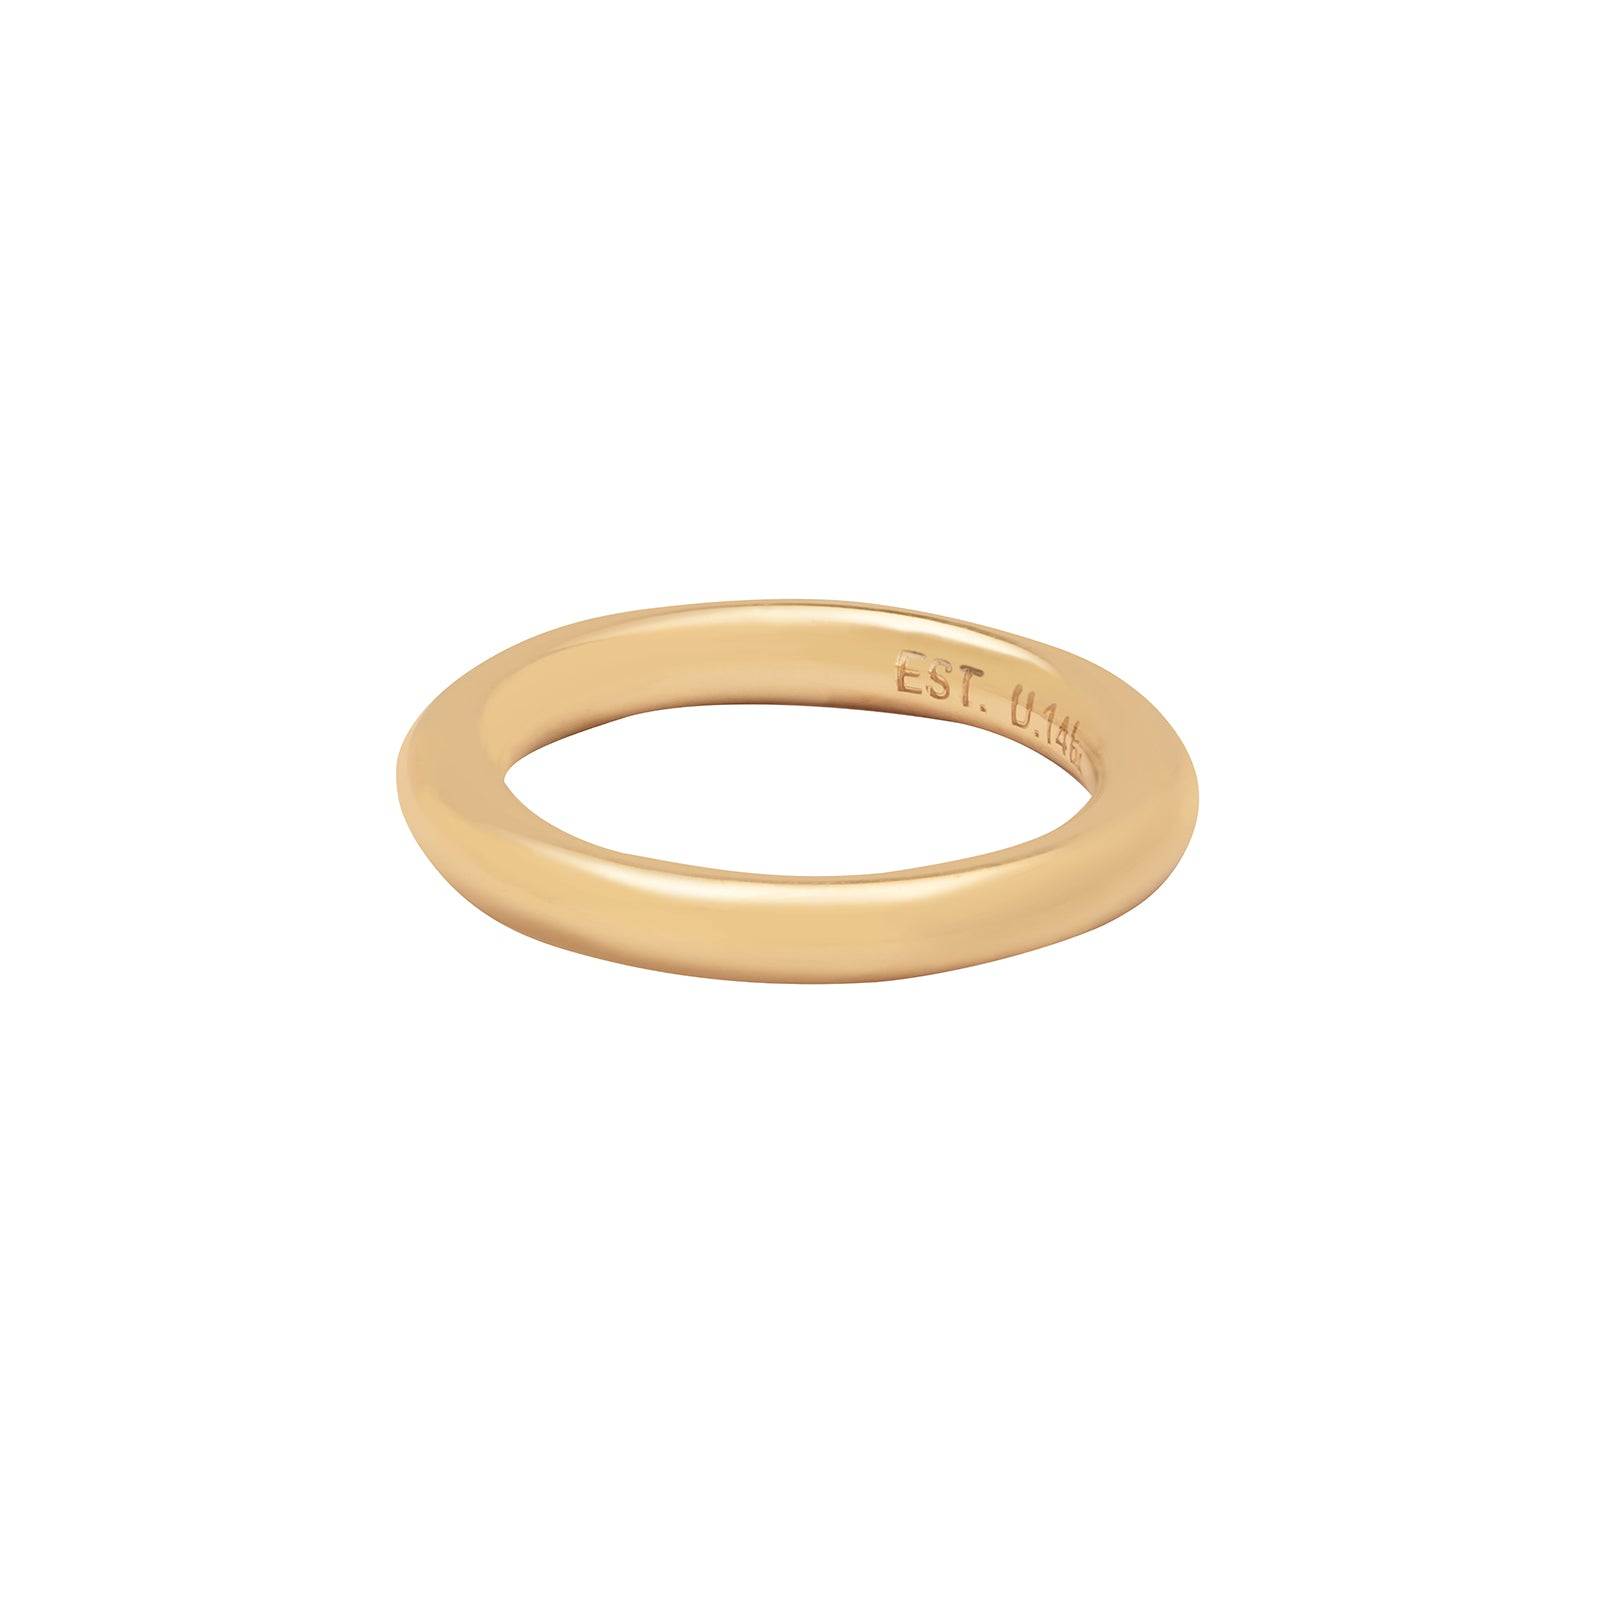 Established Jewelry 3-Piece Band Ring - Rings - Broken English Jewelry